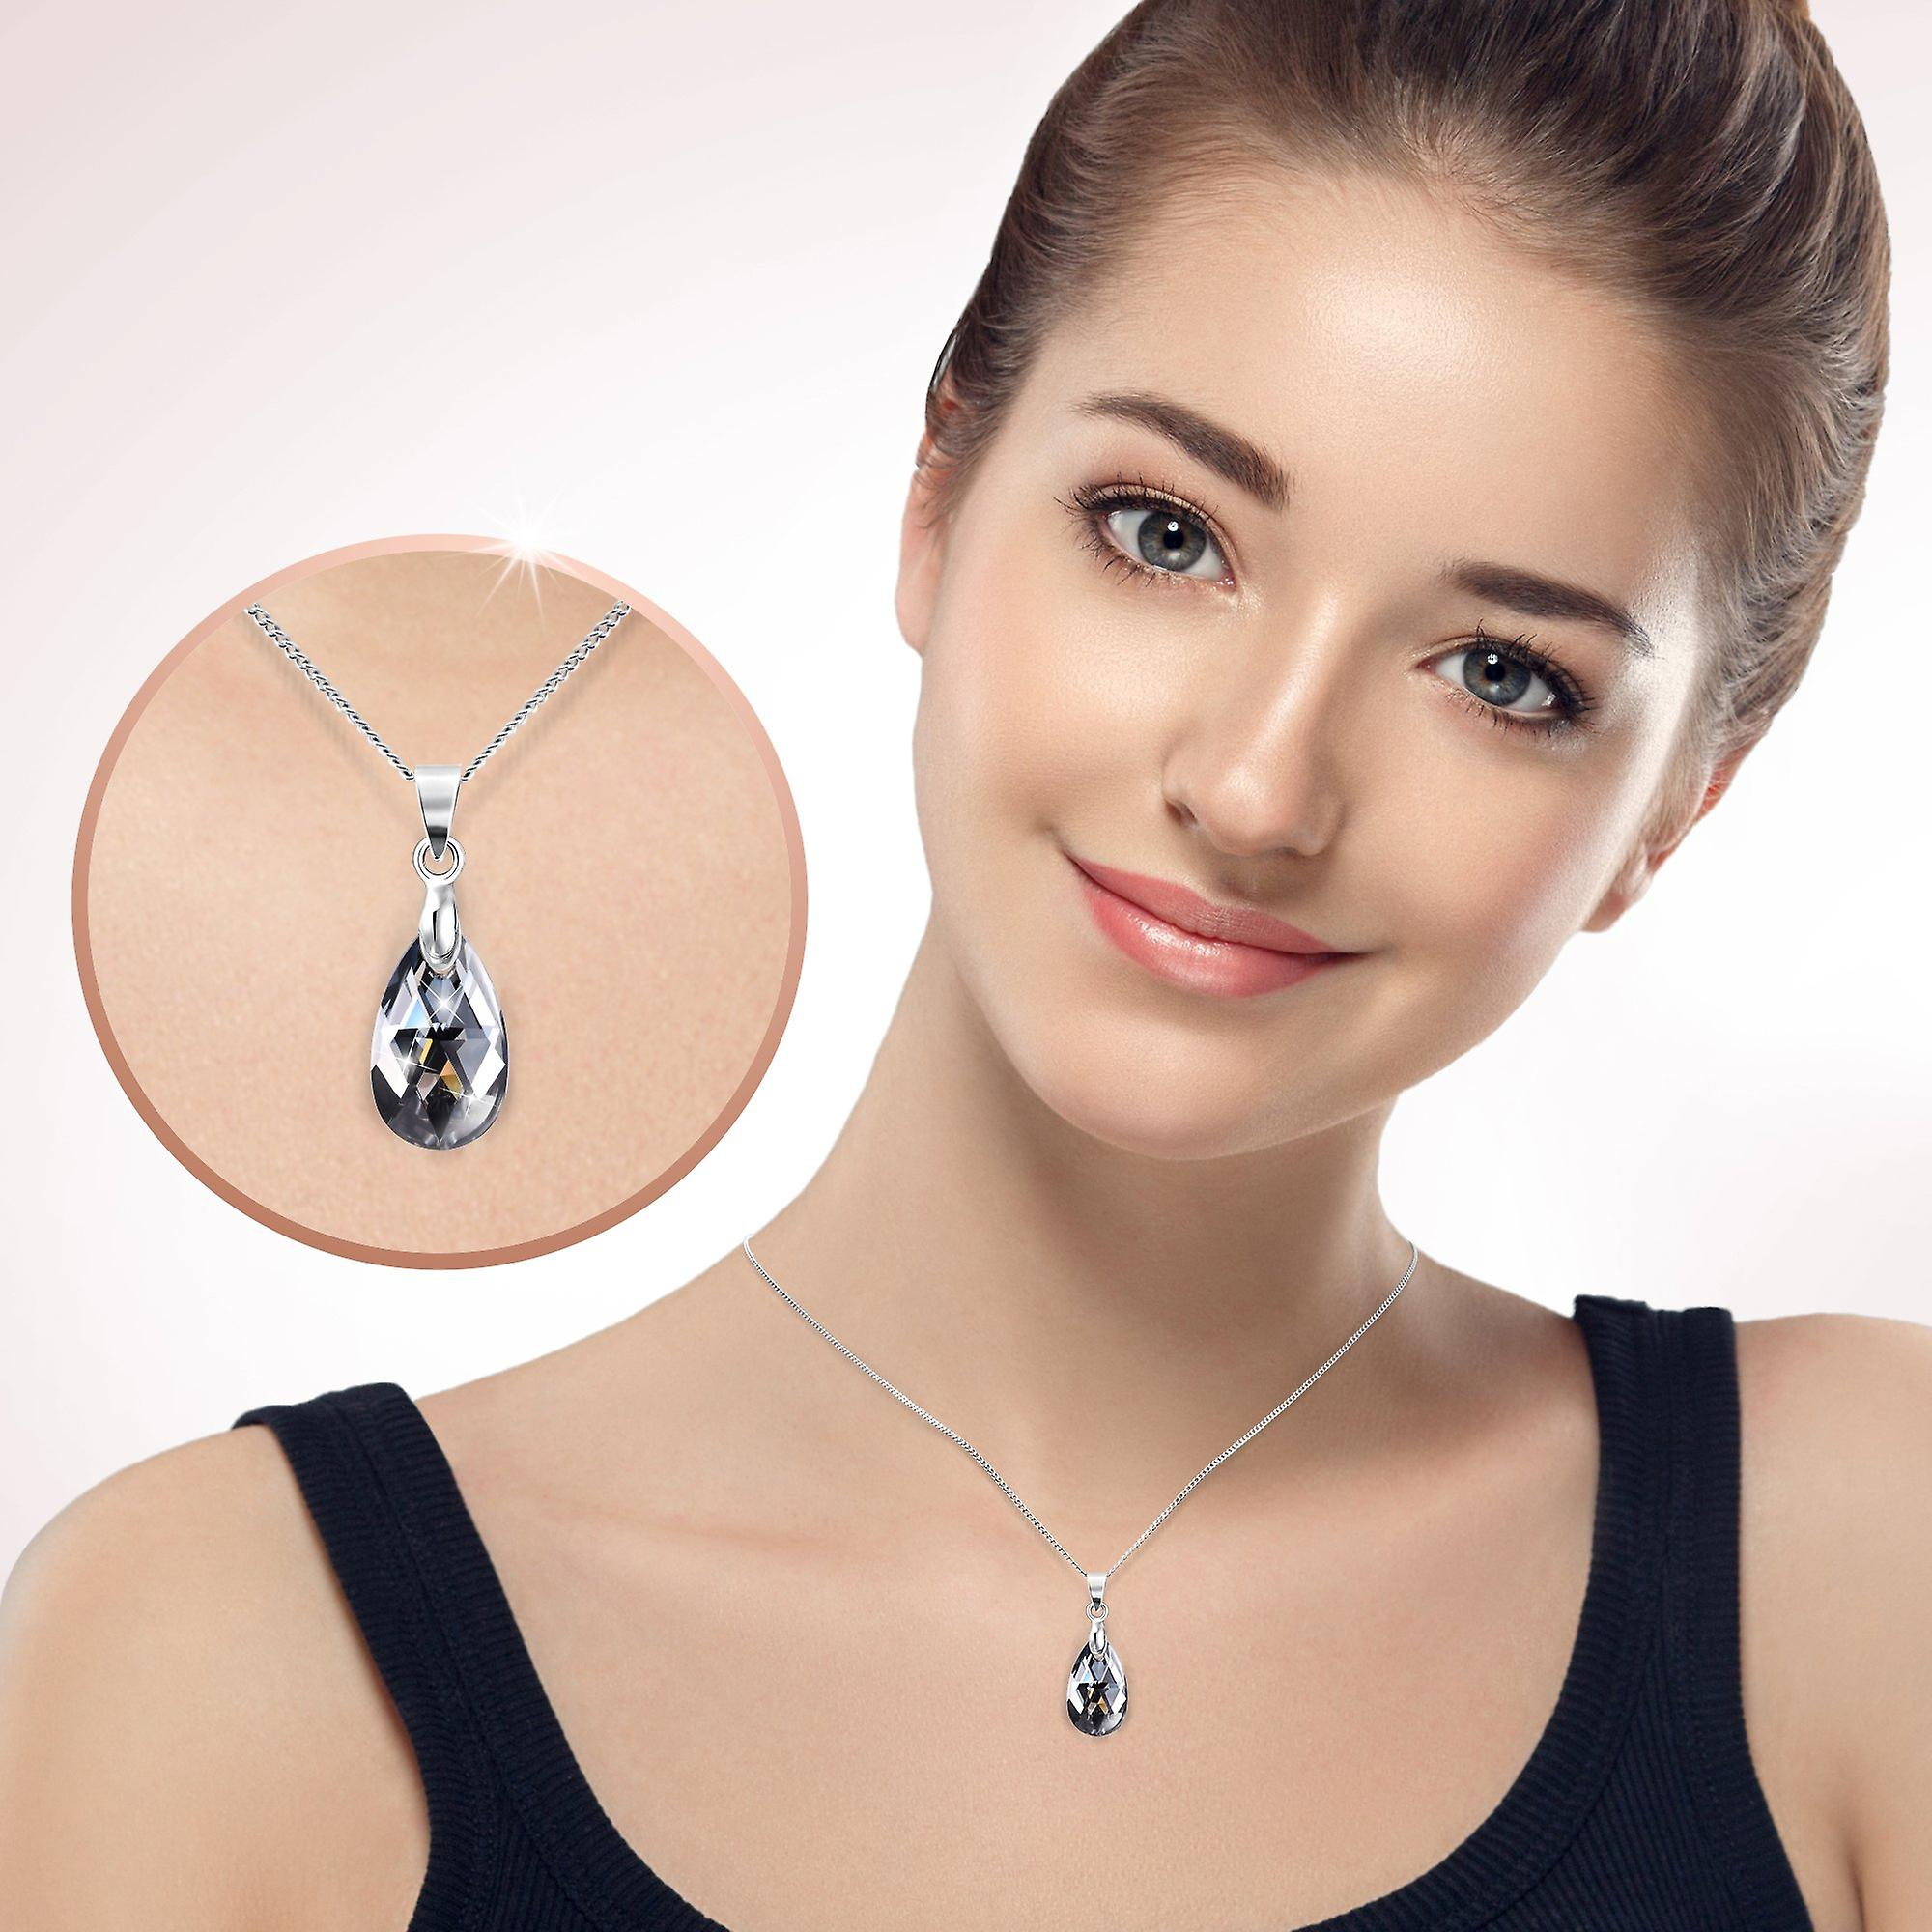 Rhodium plated necklaces with swarovski crystal. pendant necklace. by 2splendid. 2 for 1. gift box included. nnqz015